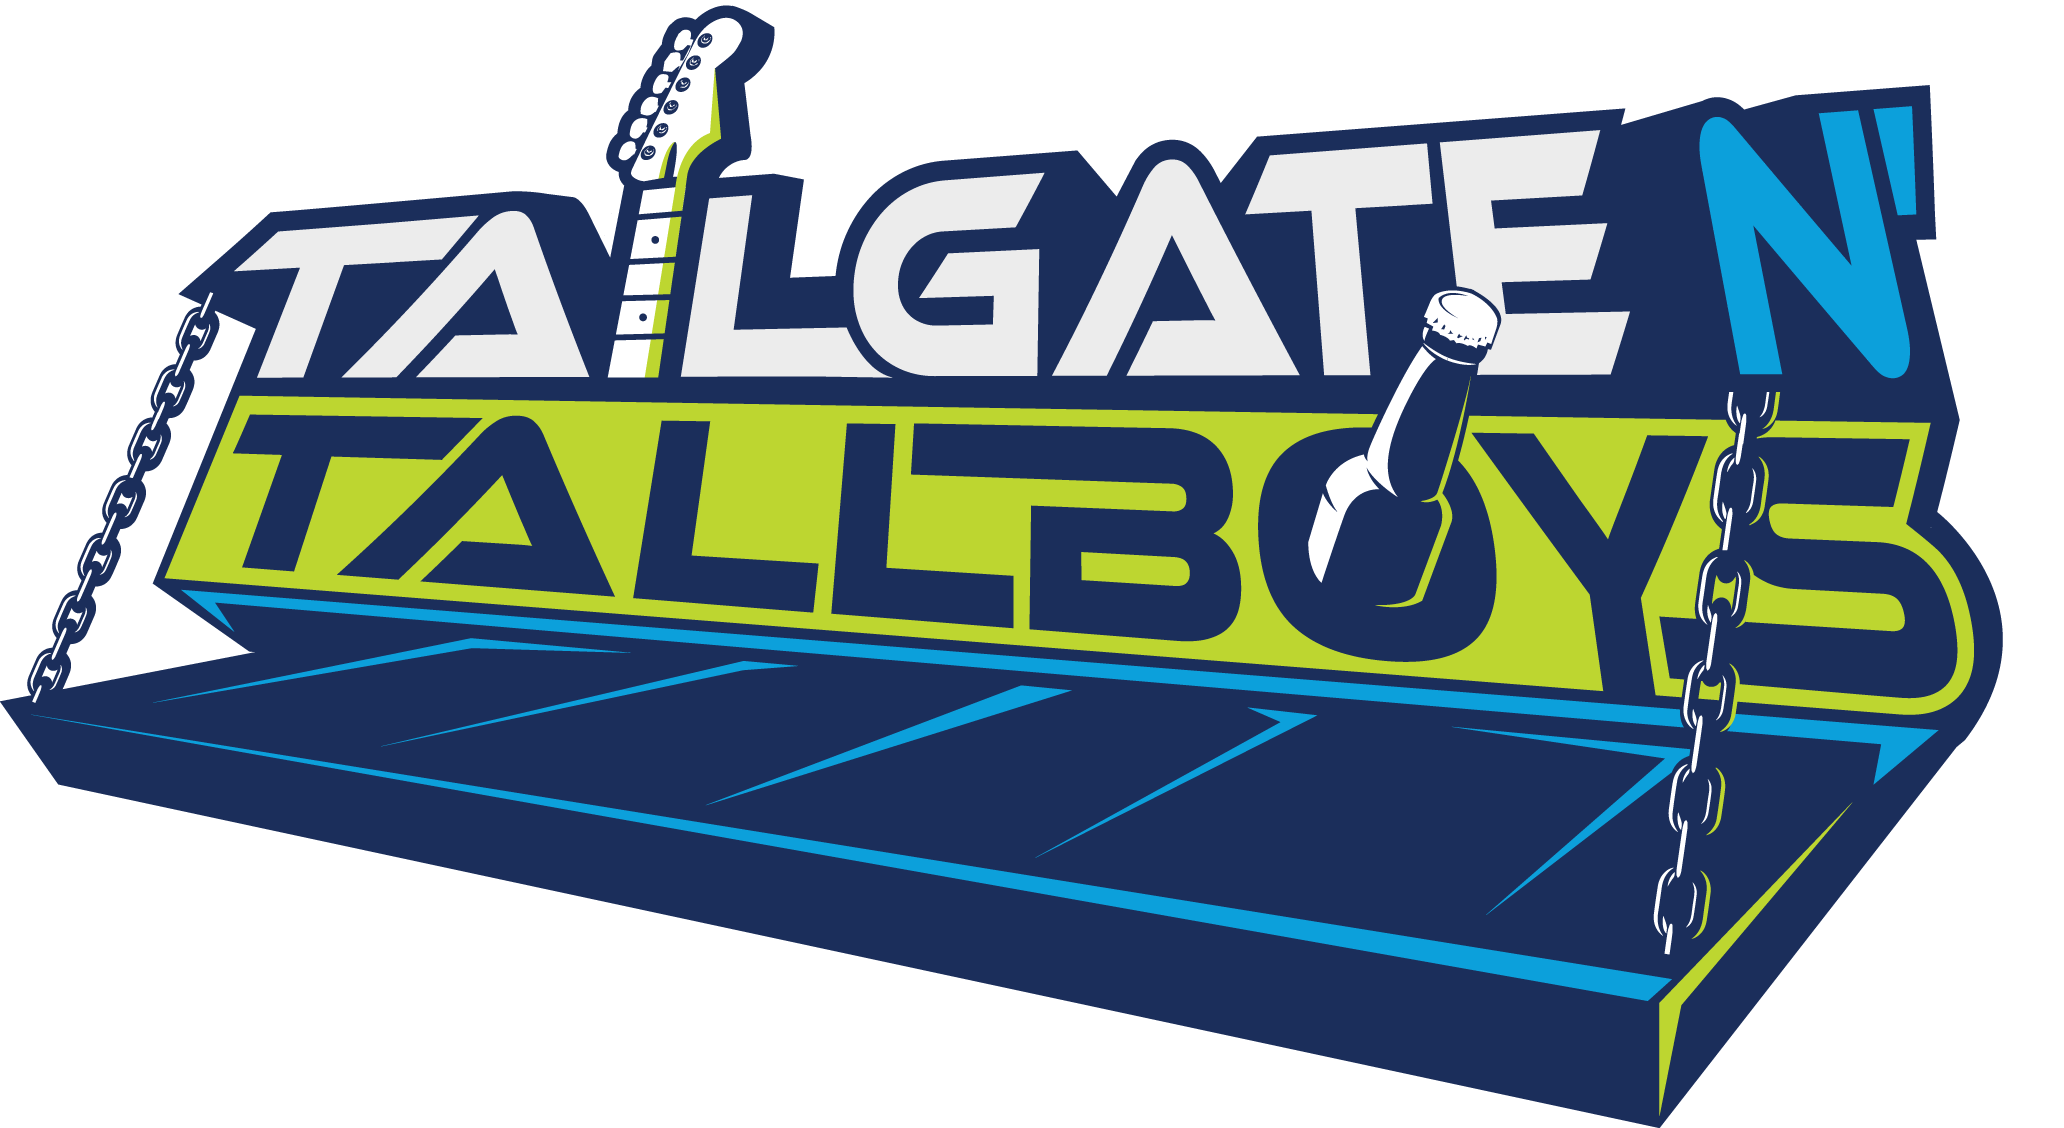 Tailgate n tallboys wixy. Tall clipart tall boy